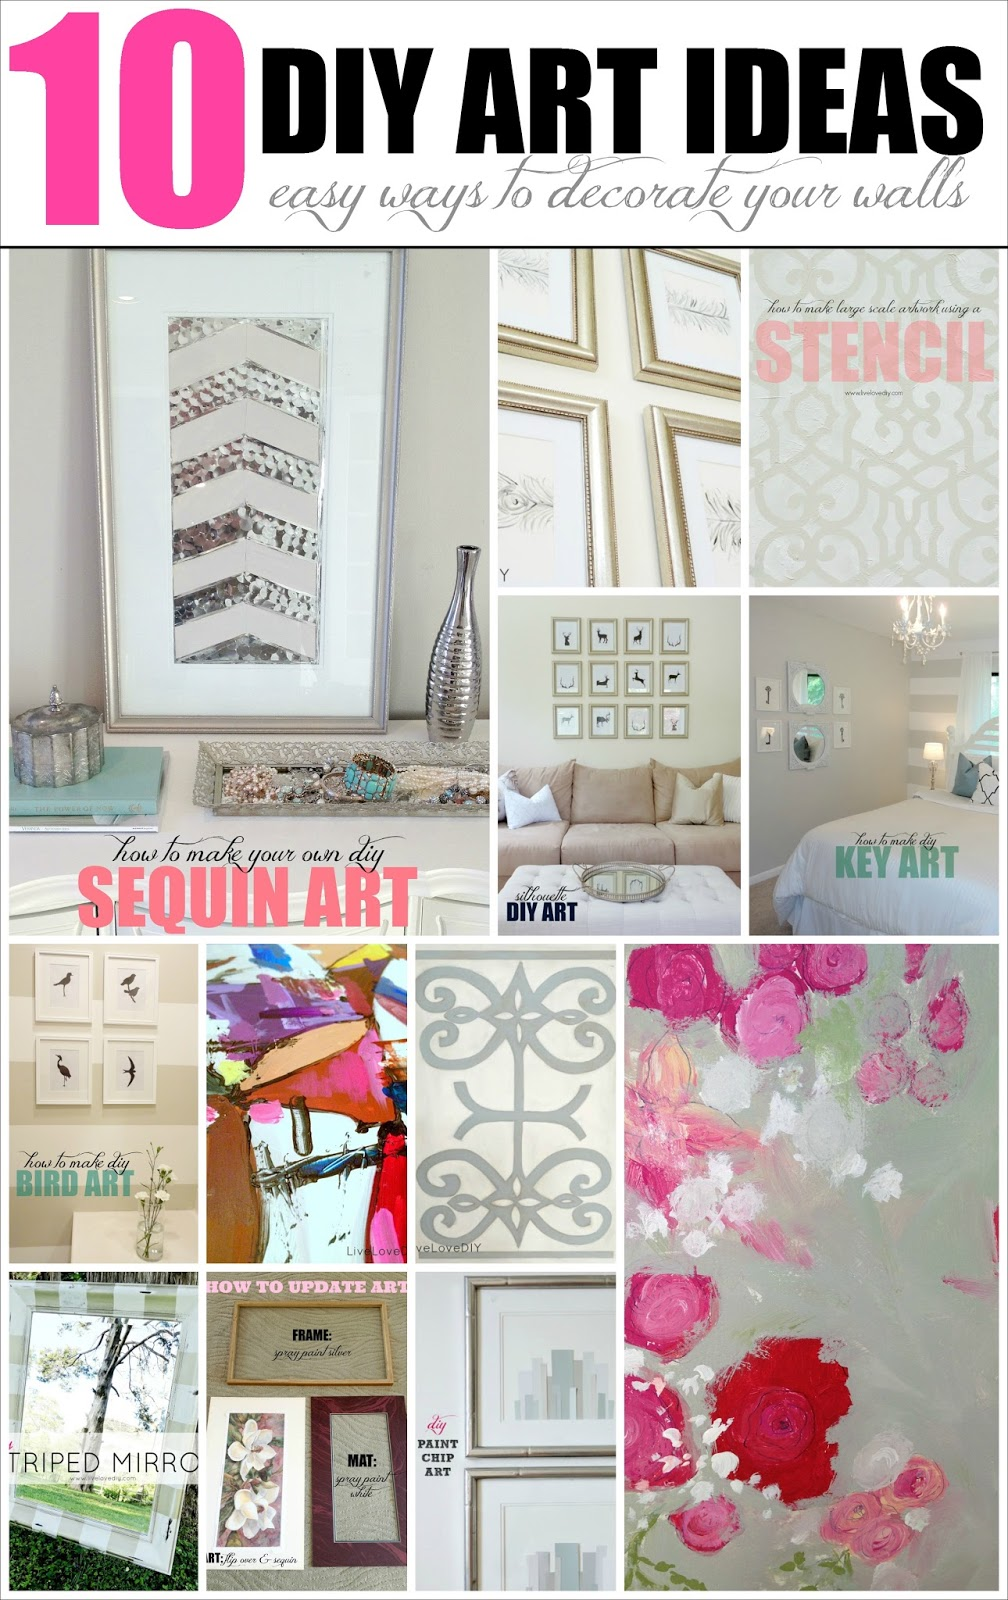 Outstanding DIY Bedroom Wall Art Ideas 1008 x 1600 · 343 kB · jpeg